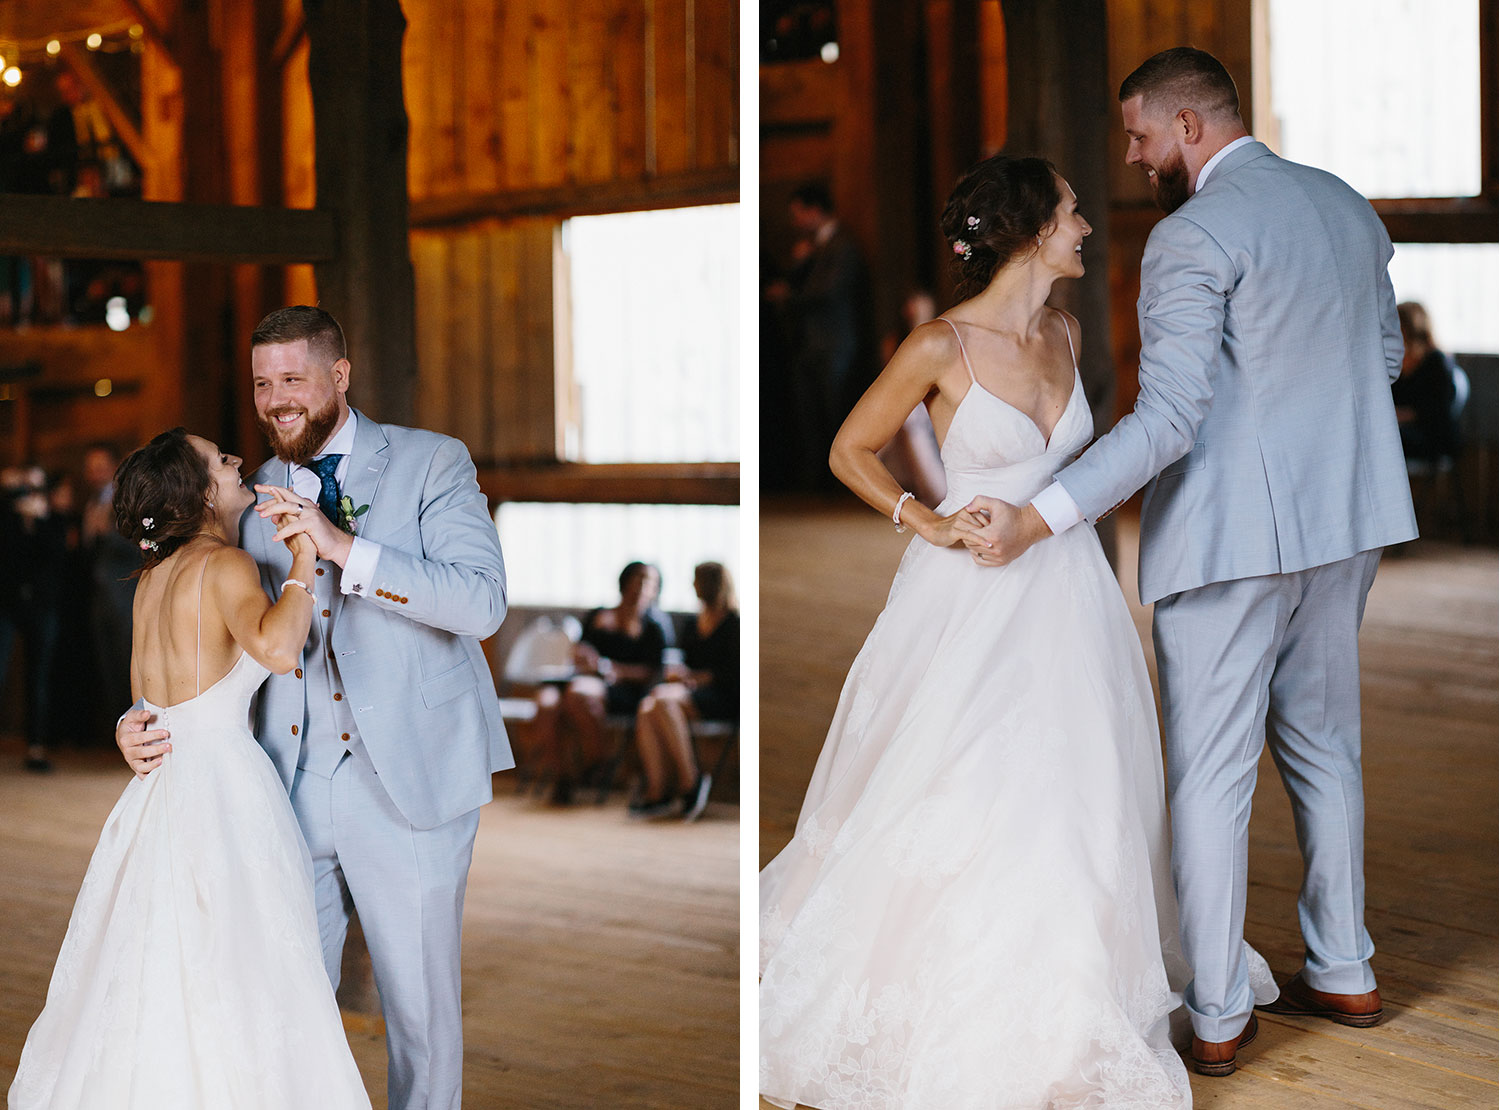 48-Editorial-Toronto-Wedding-Photographers-Photojournalistic-Wedding-Photography-in-Toronto-Ryanne-Hollies-Photography-vintage-barn-wedding-inspiration-reception-first-dance-choreographed.jpg